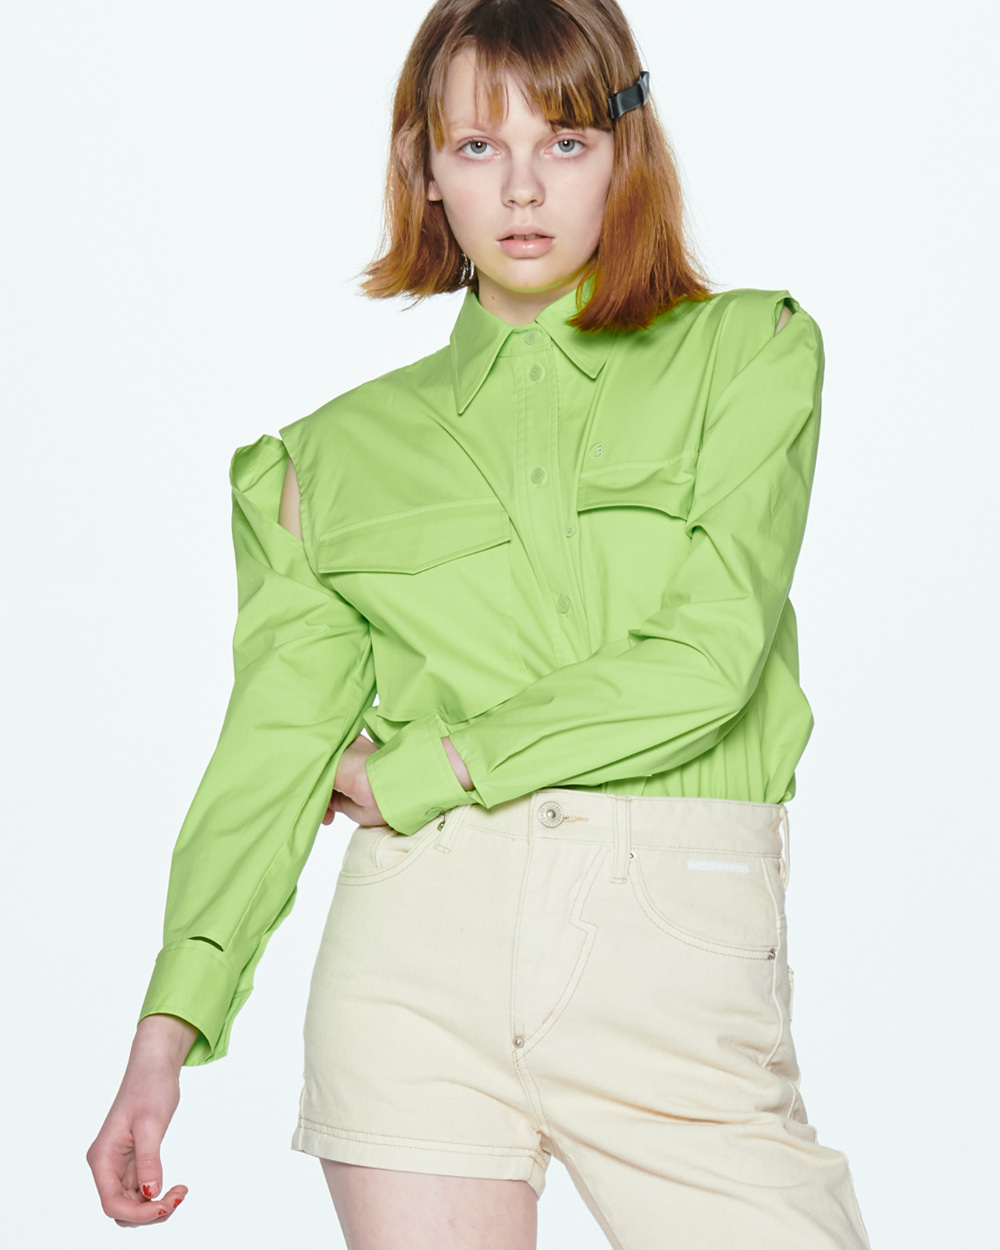 CUTOUT LIME SHIRT